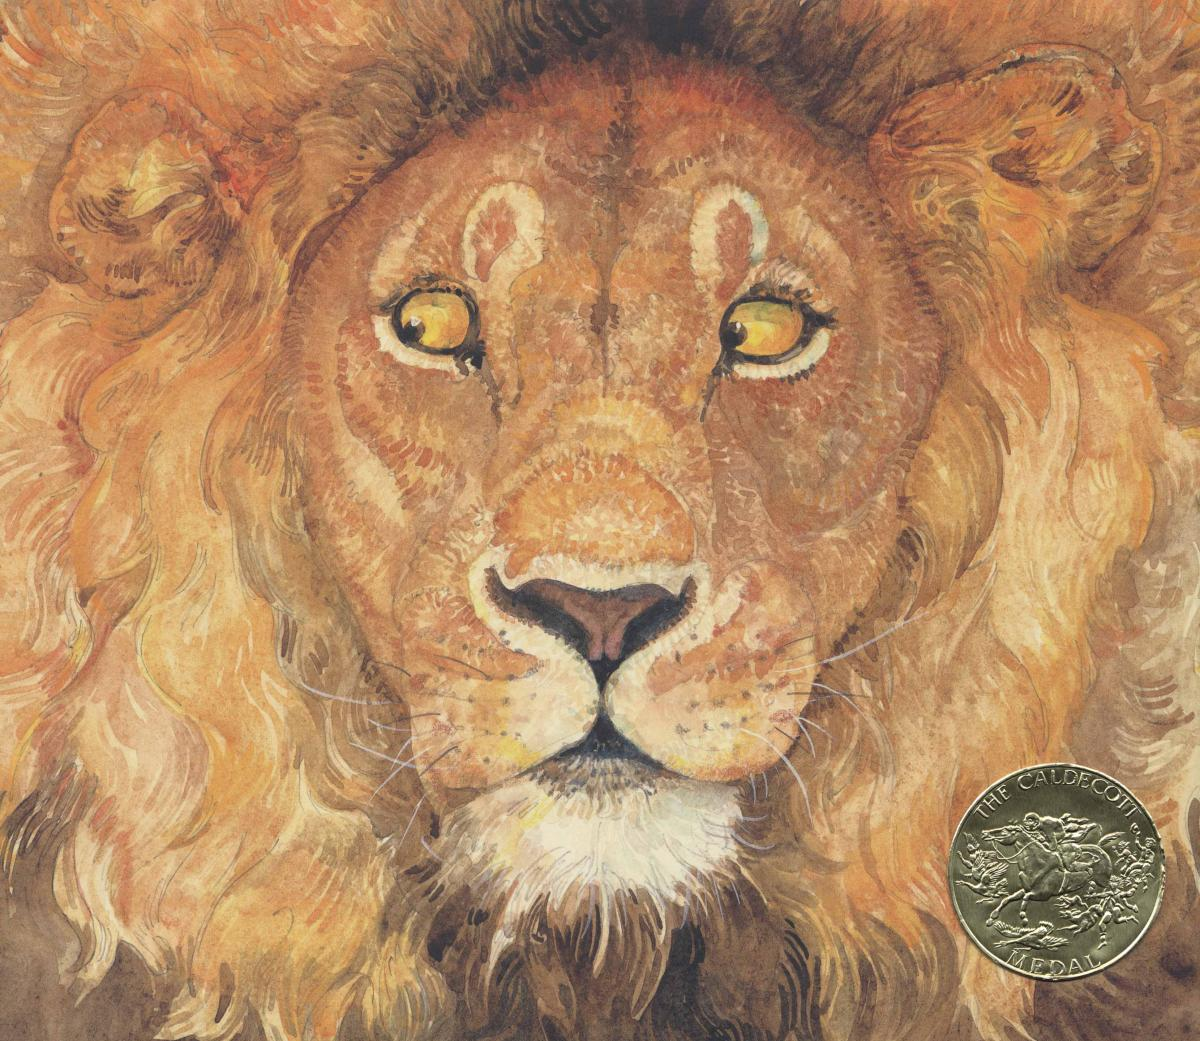 The Lion & the Mouse - book cover image